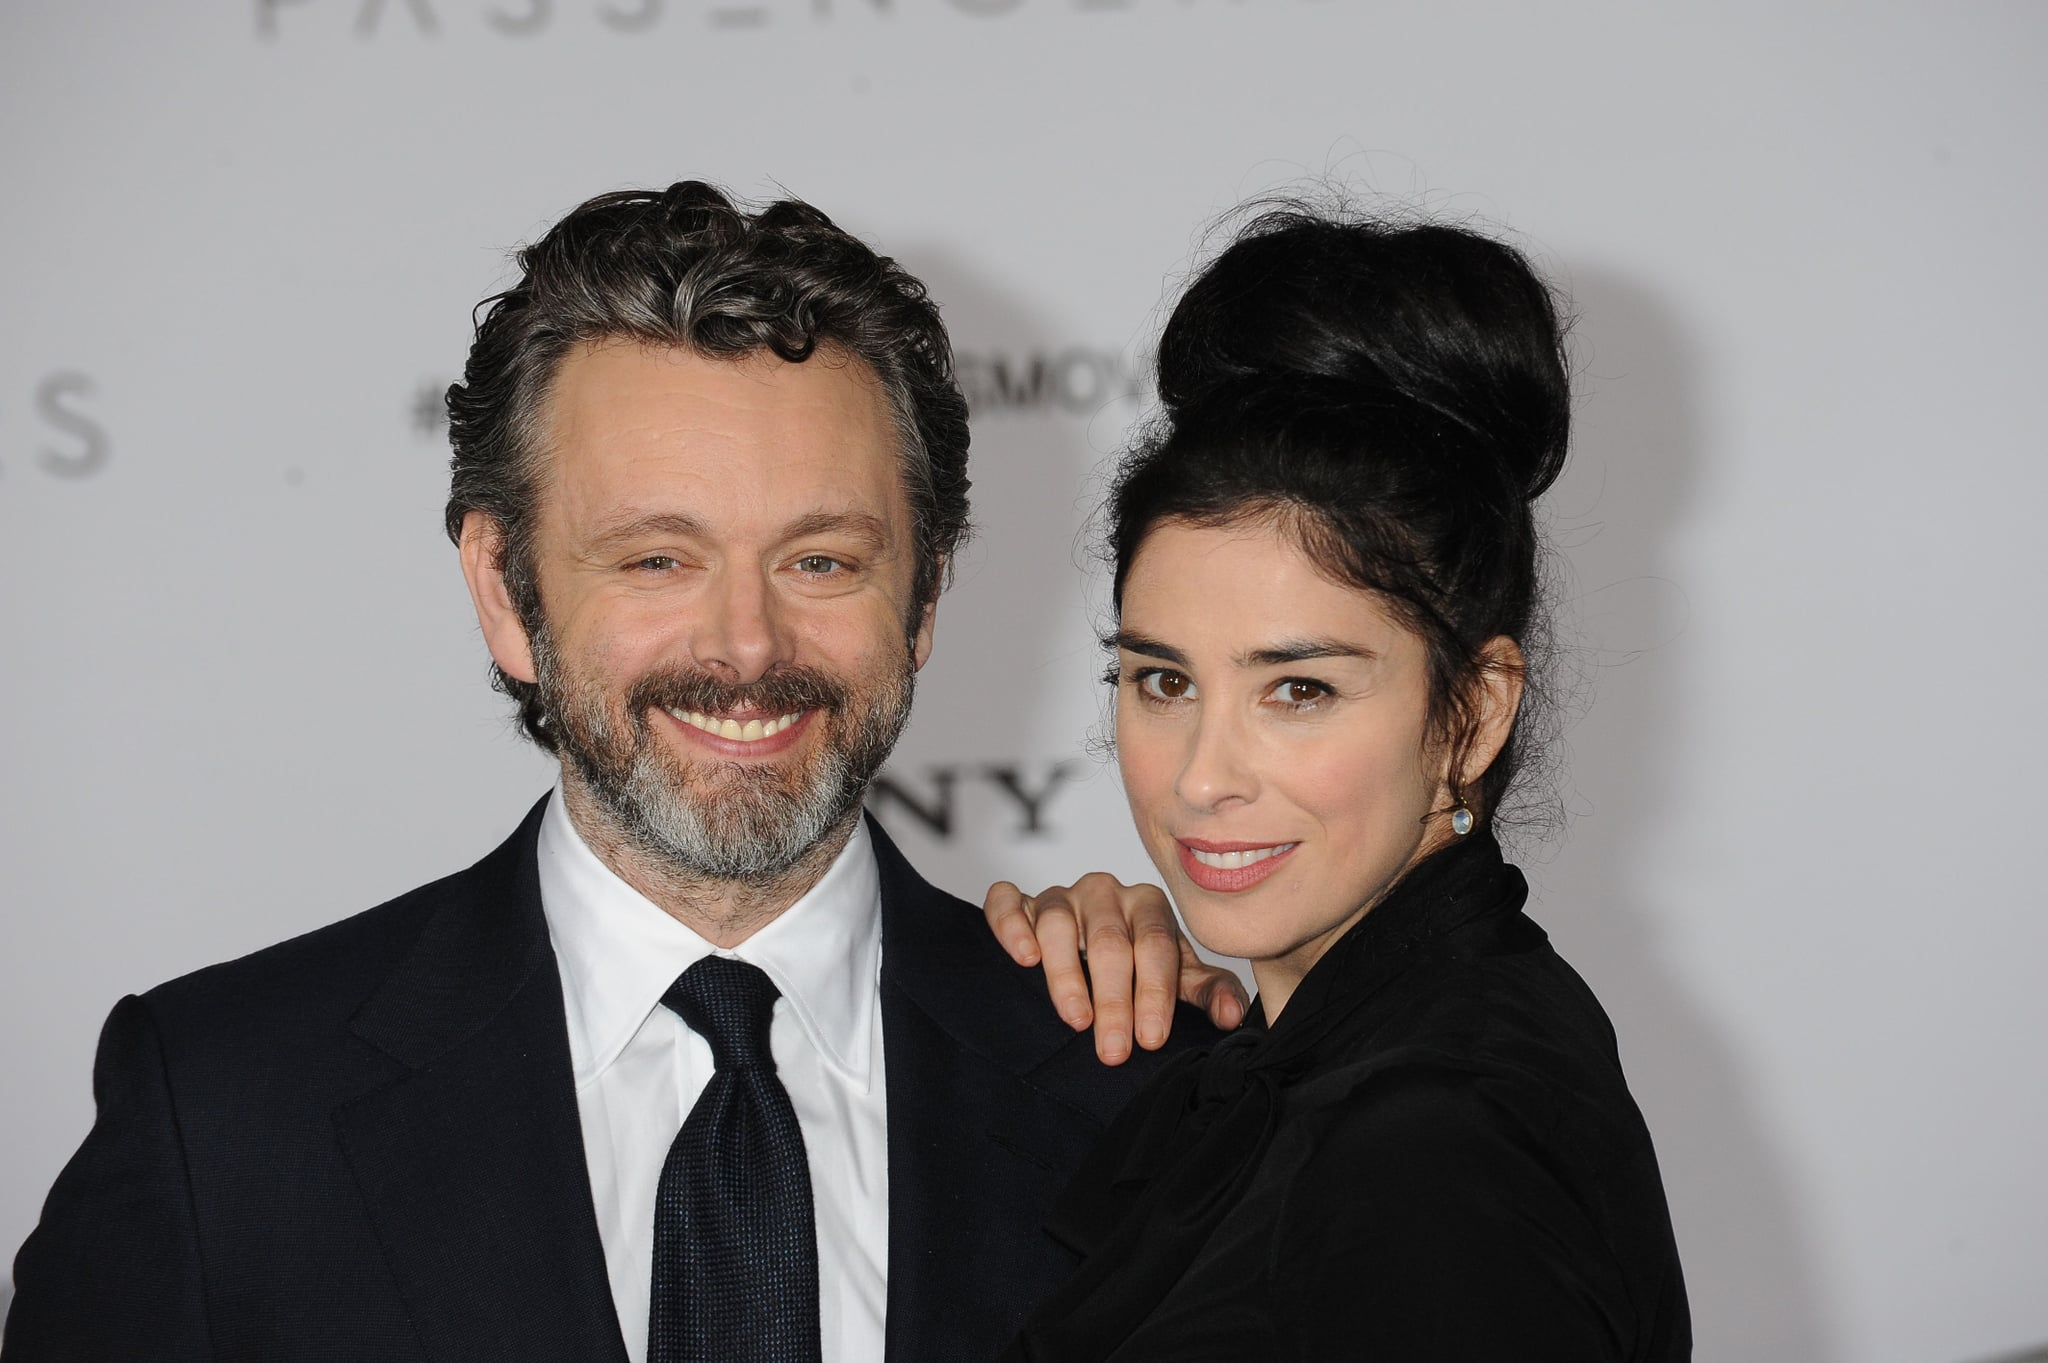 Sarah Silverman, Michael Sheen 'Consciously Uncoupled' Over The Holidays